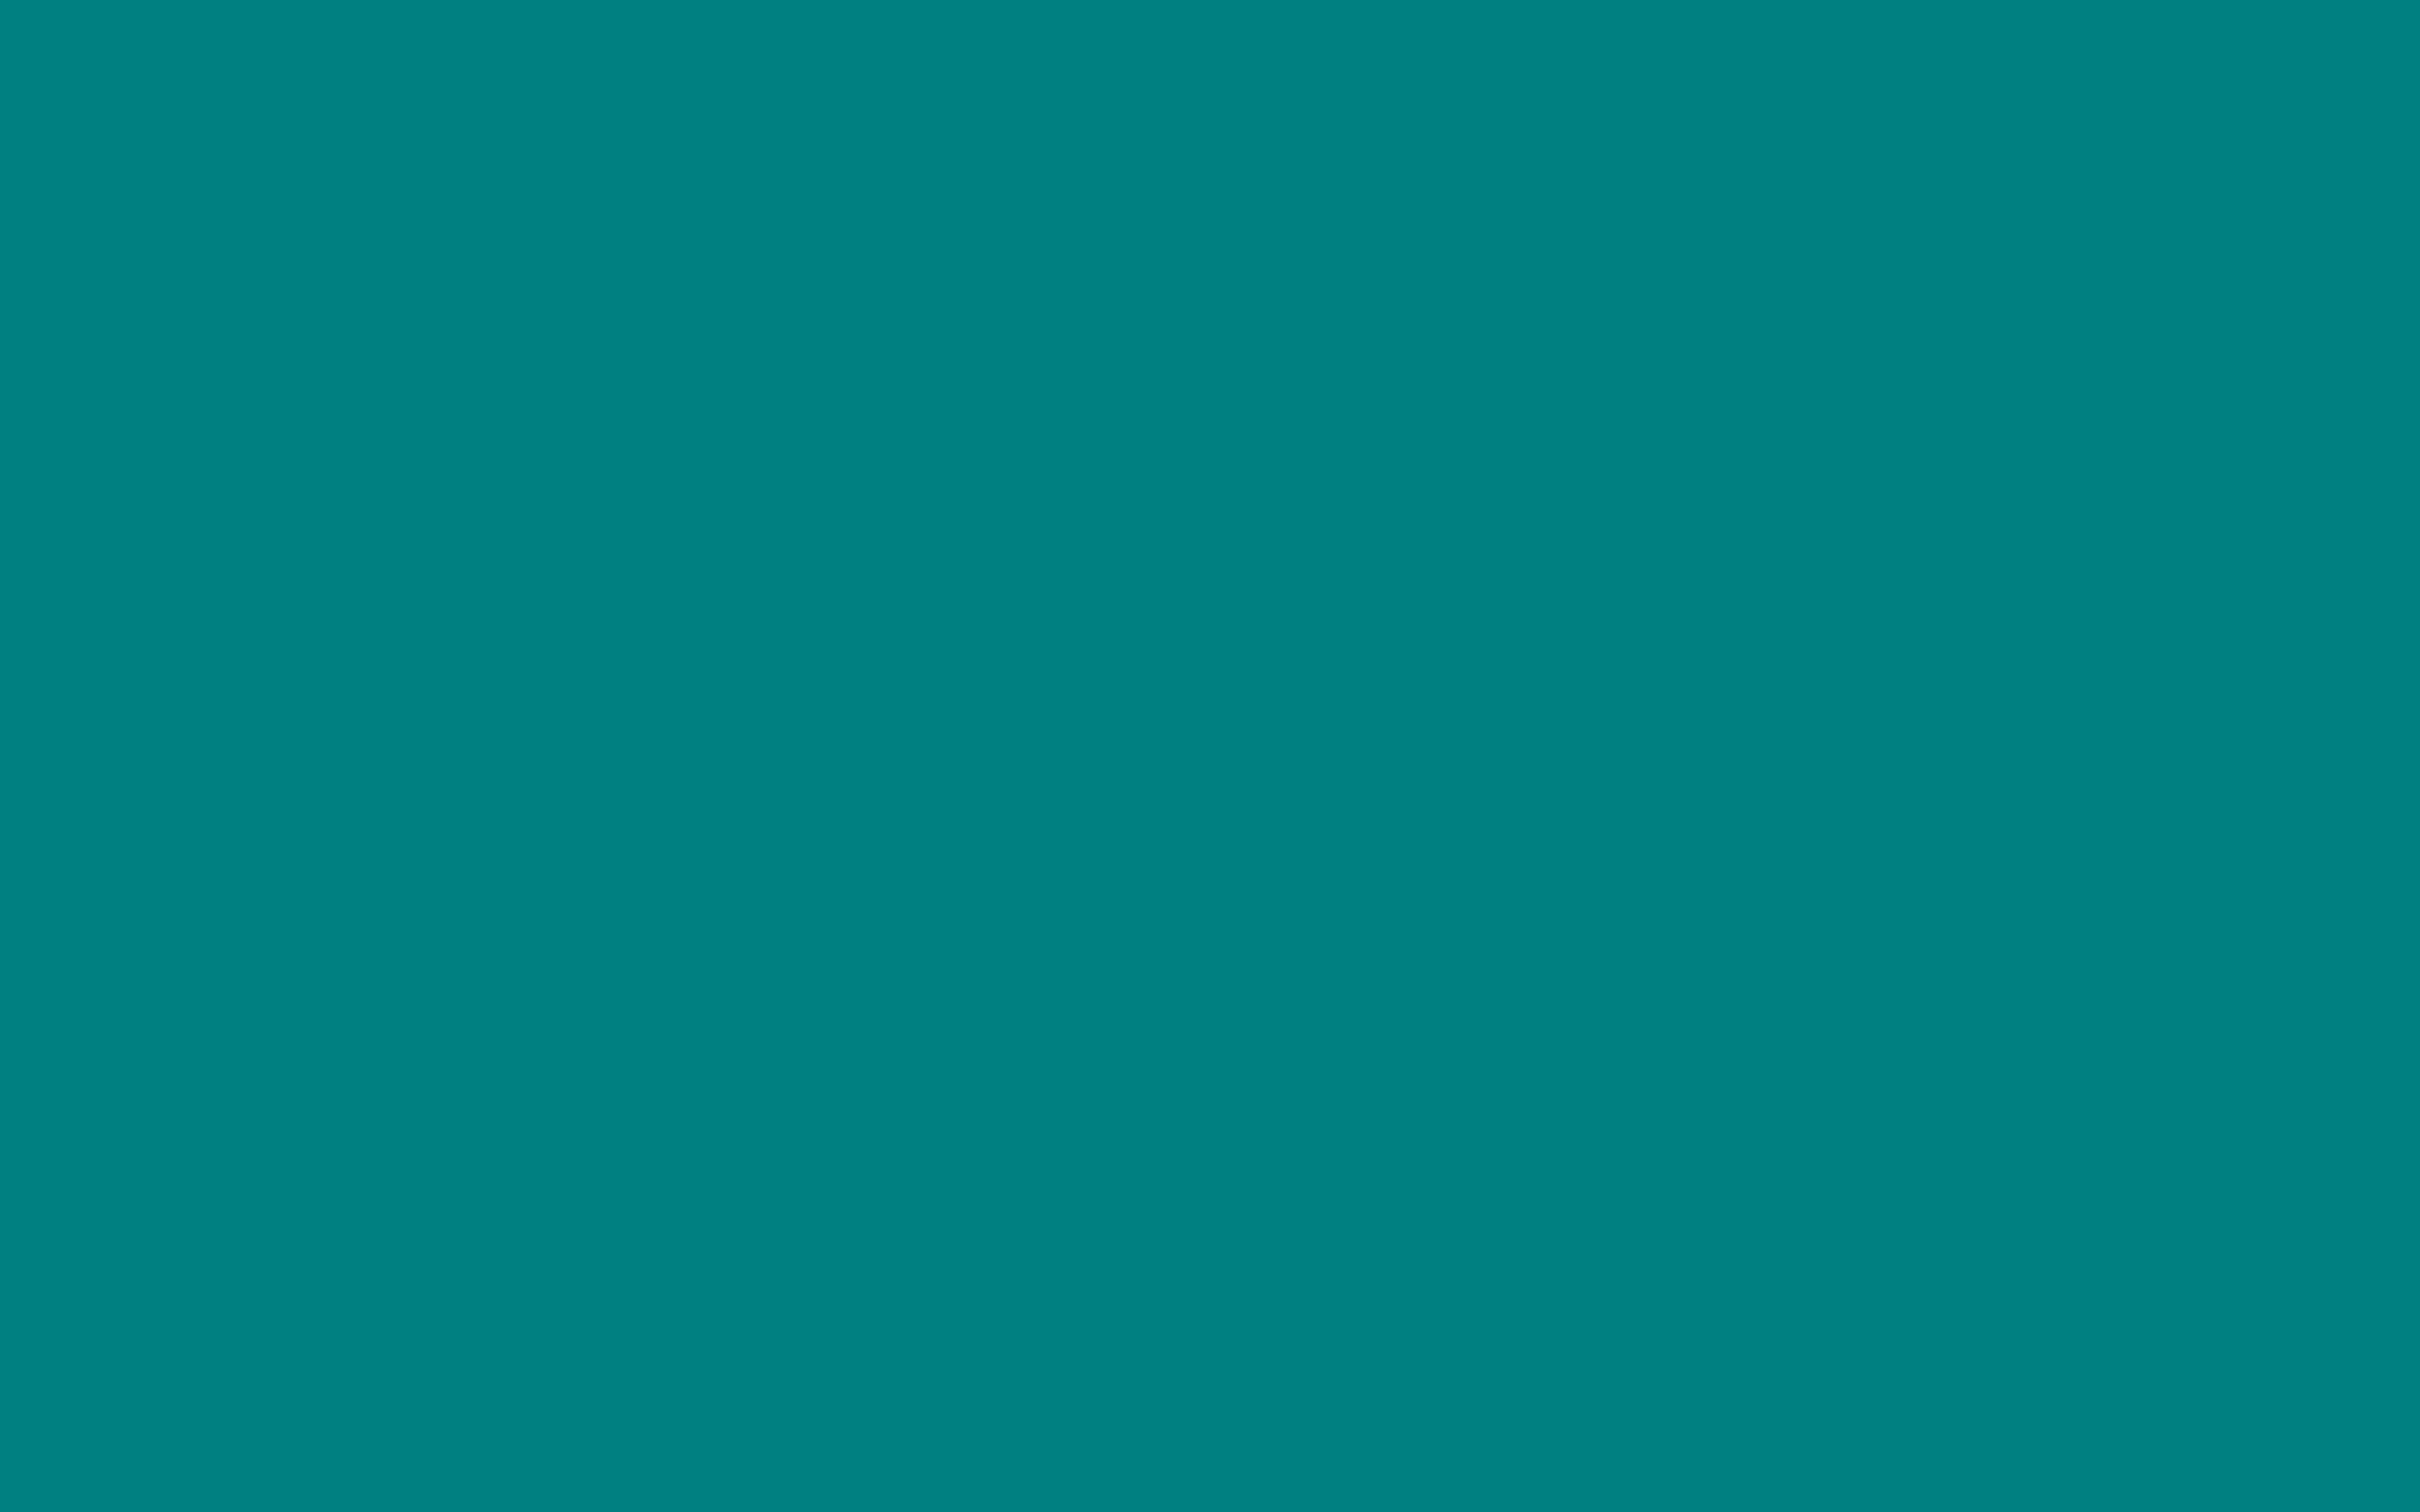 2560x1600 Teal Solid Color Background